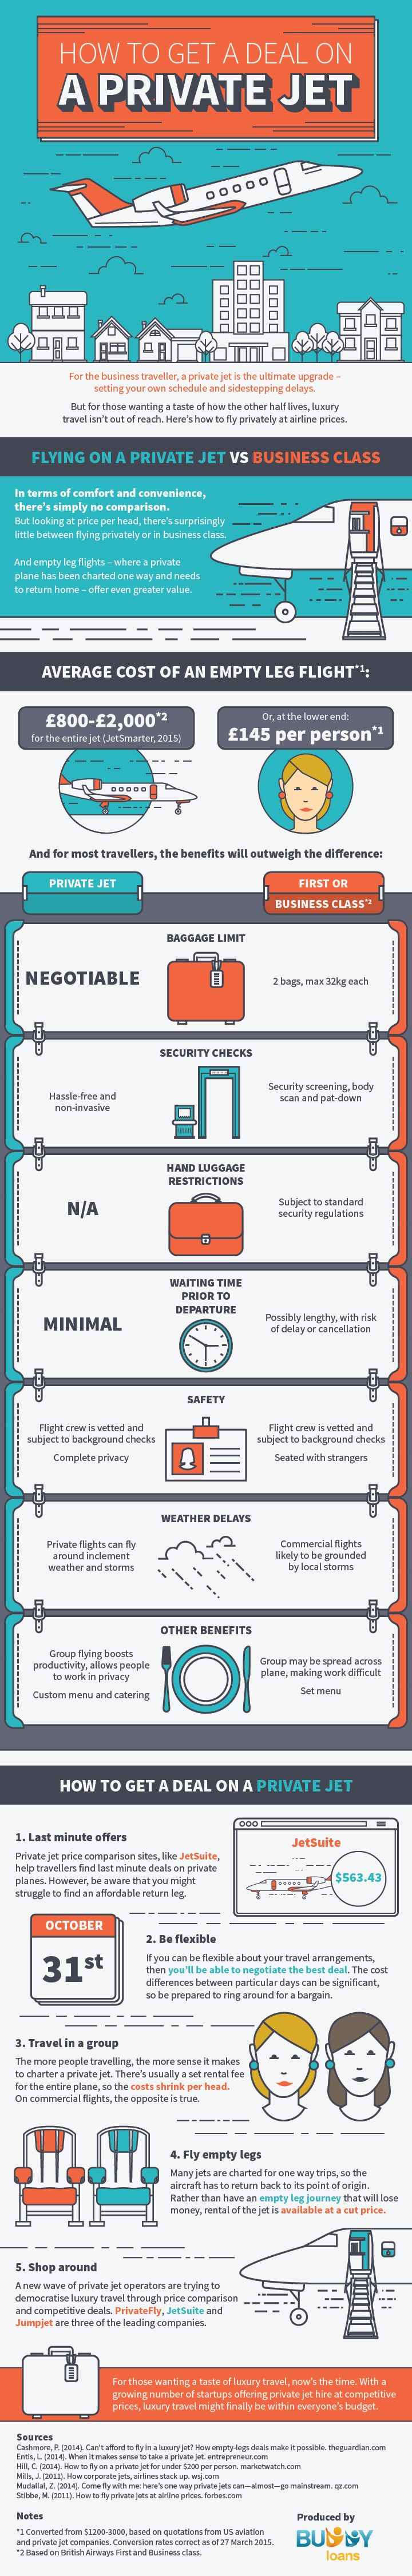 How to get a deal on a private jet. #infographic #design